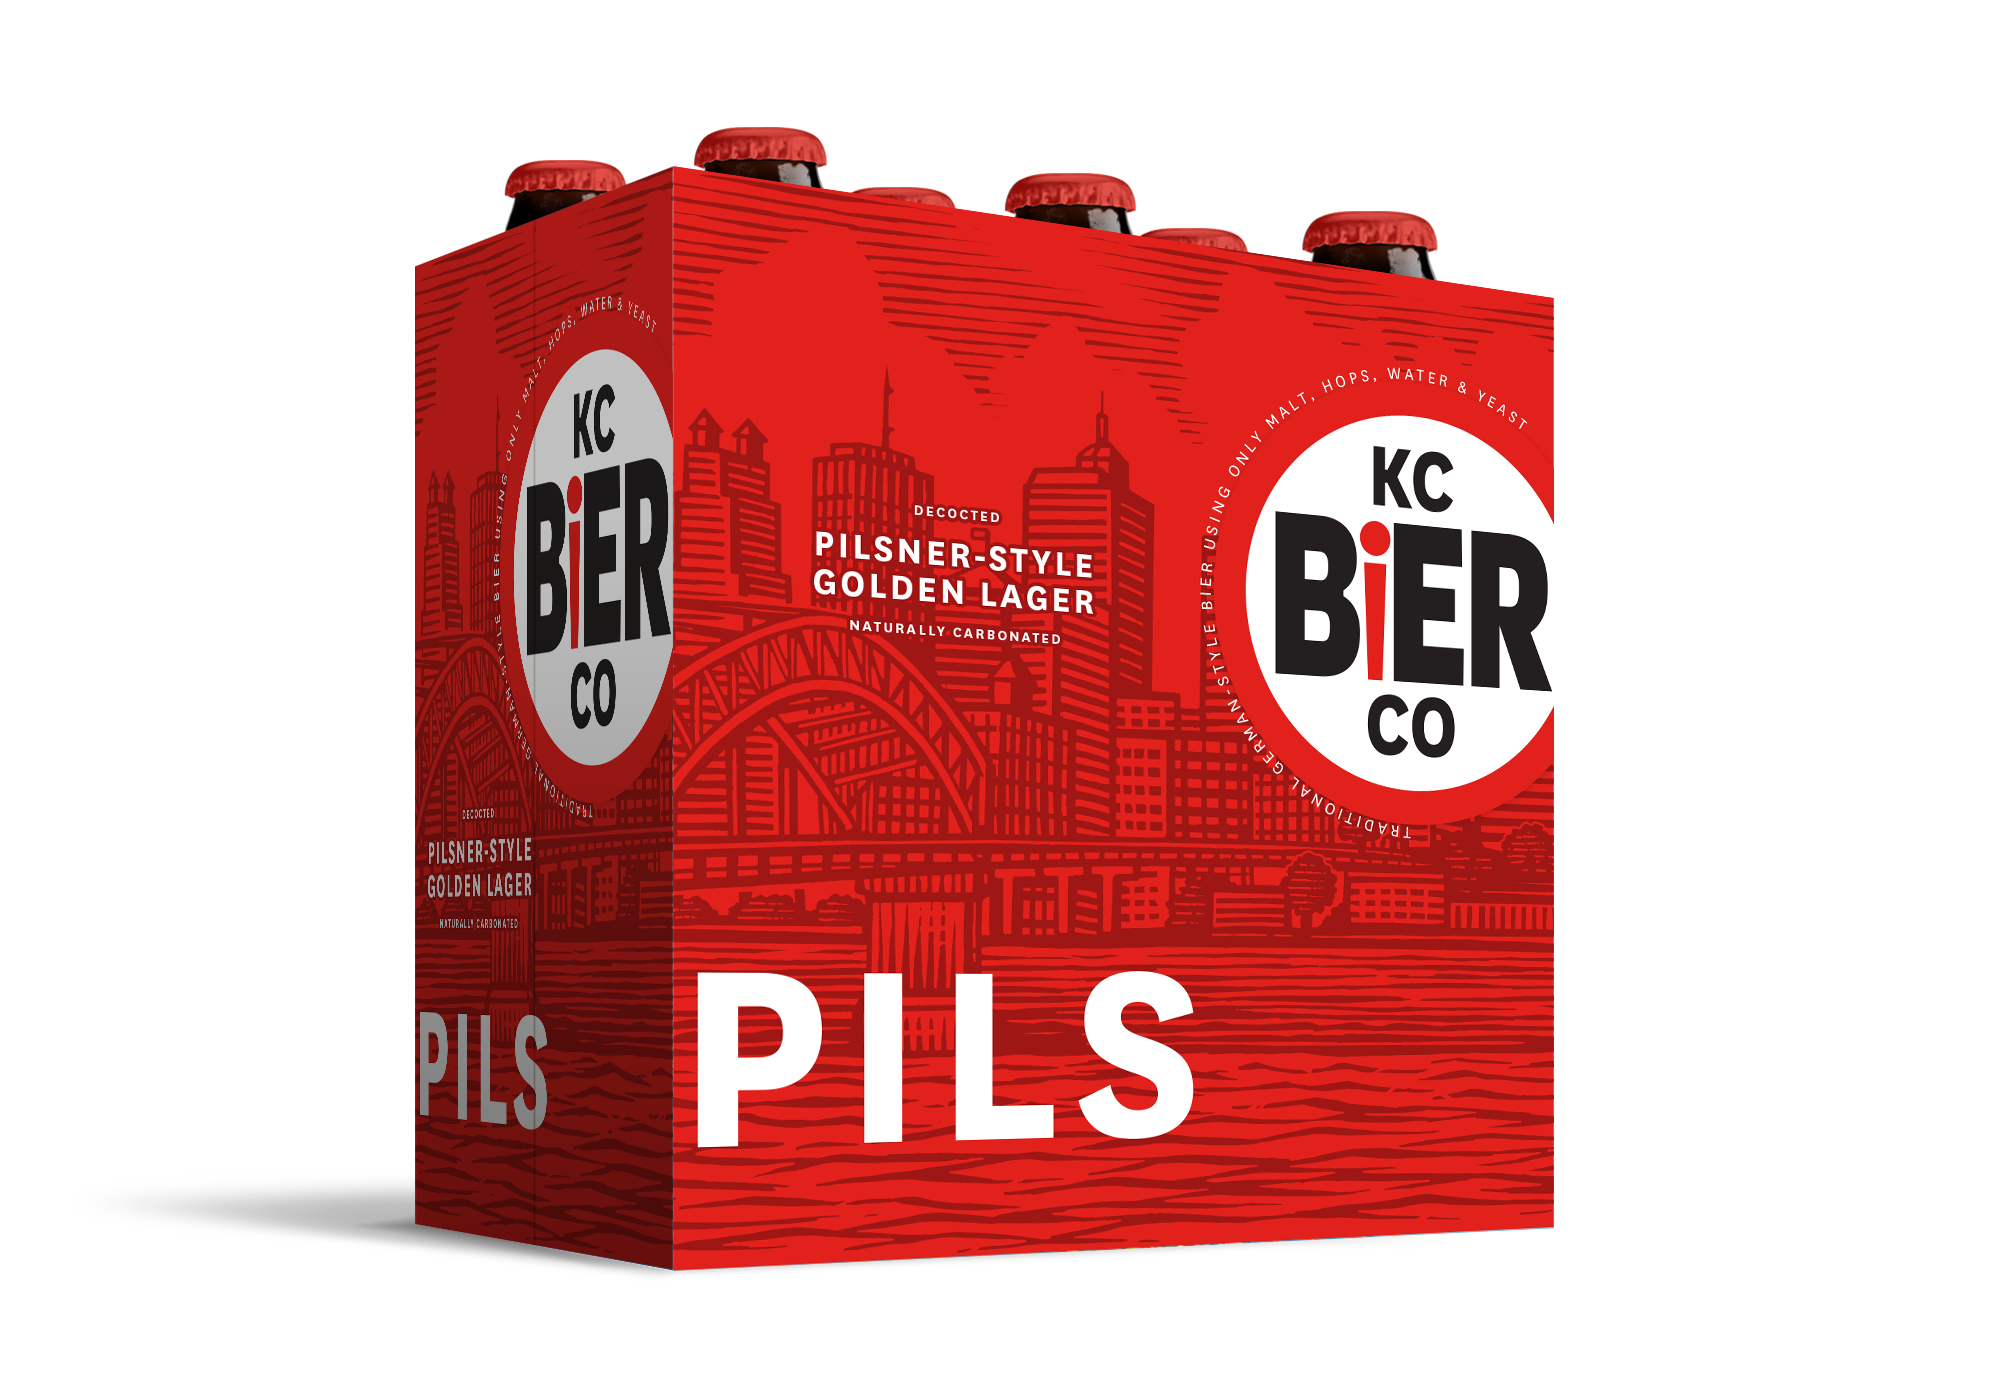 KC Bier Co. celebrates accolades, year-round bottled offering